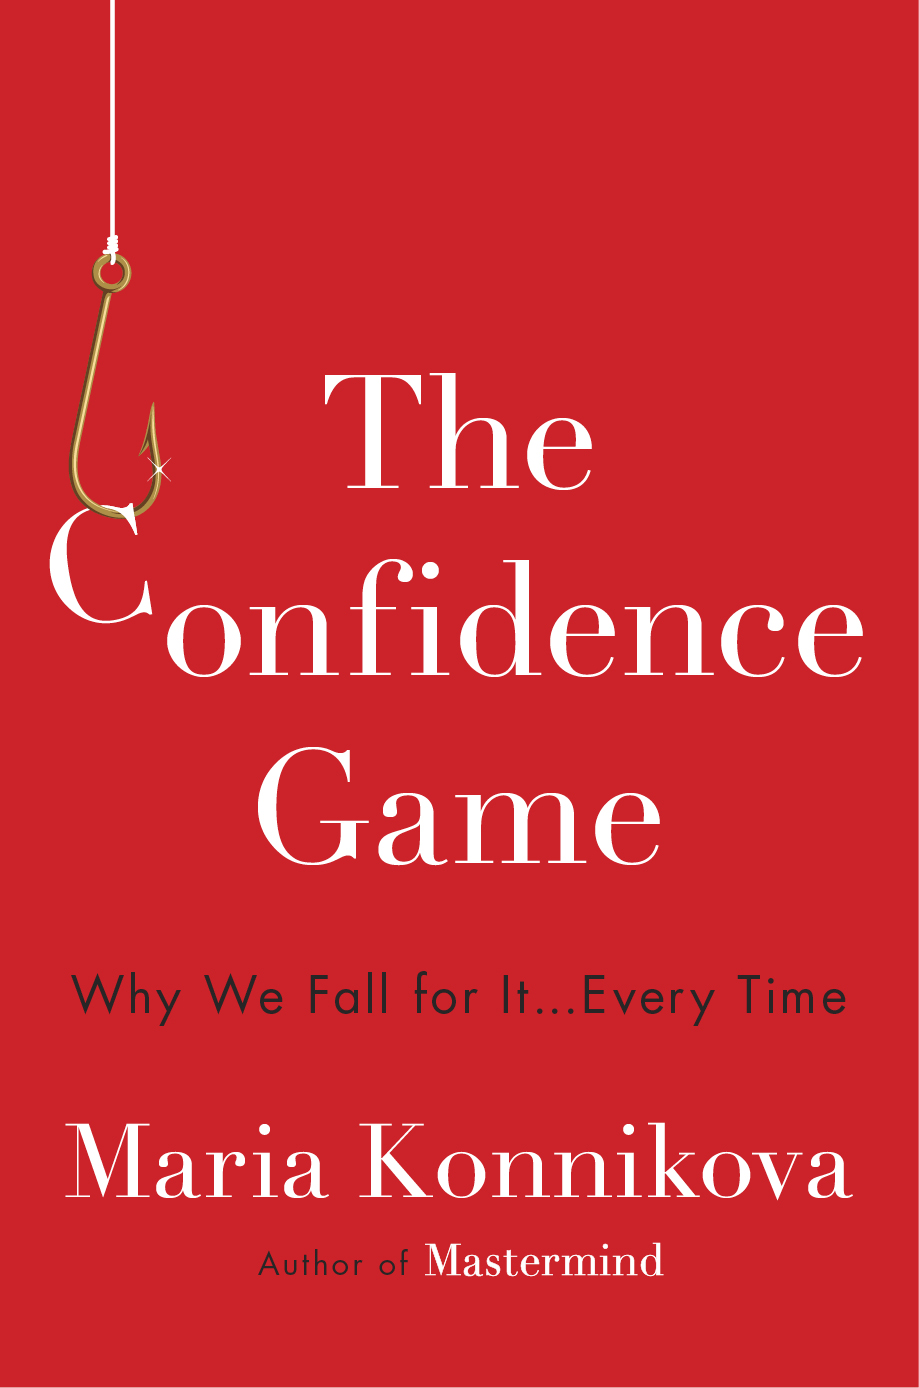 theconfidencegame_jkf_r3_a